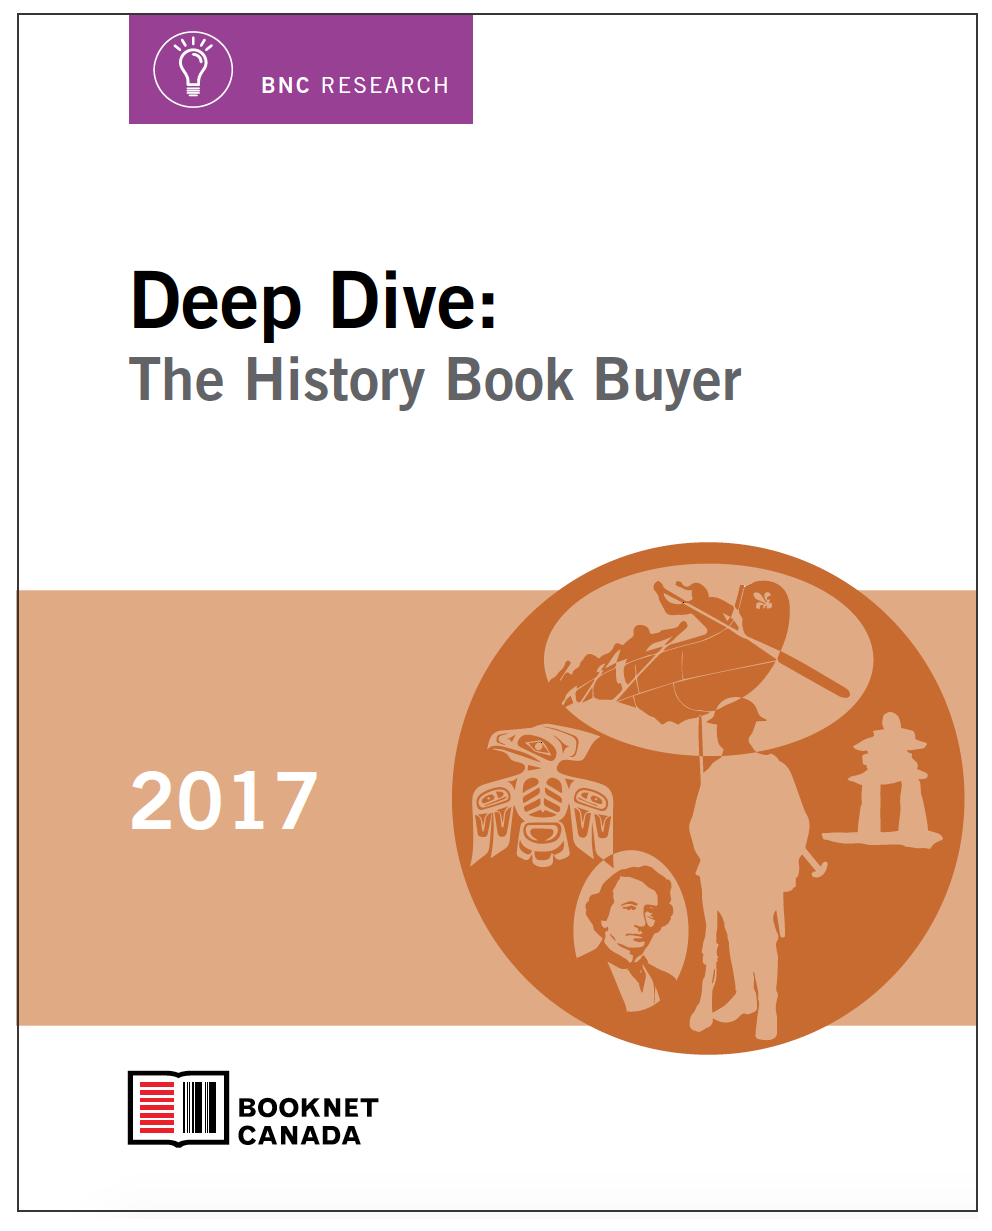 Deep Dive: The History Book Buyer cover image.